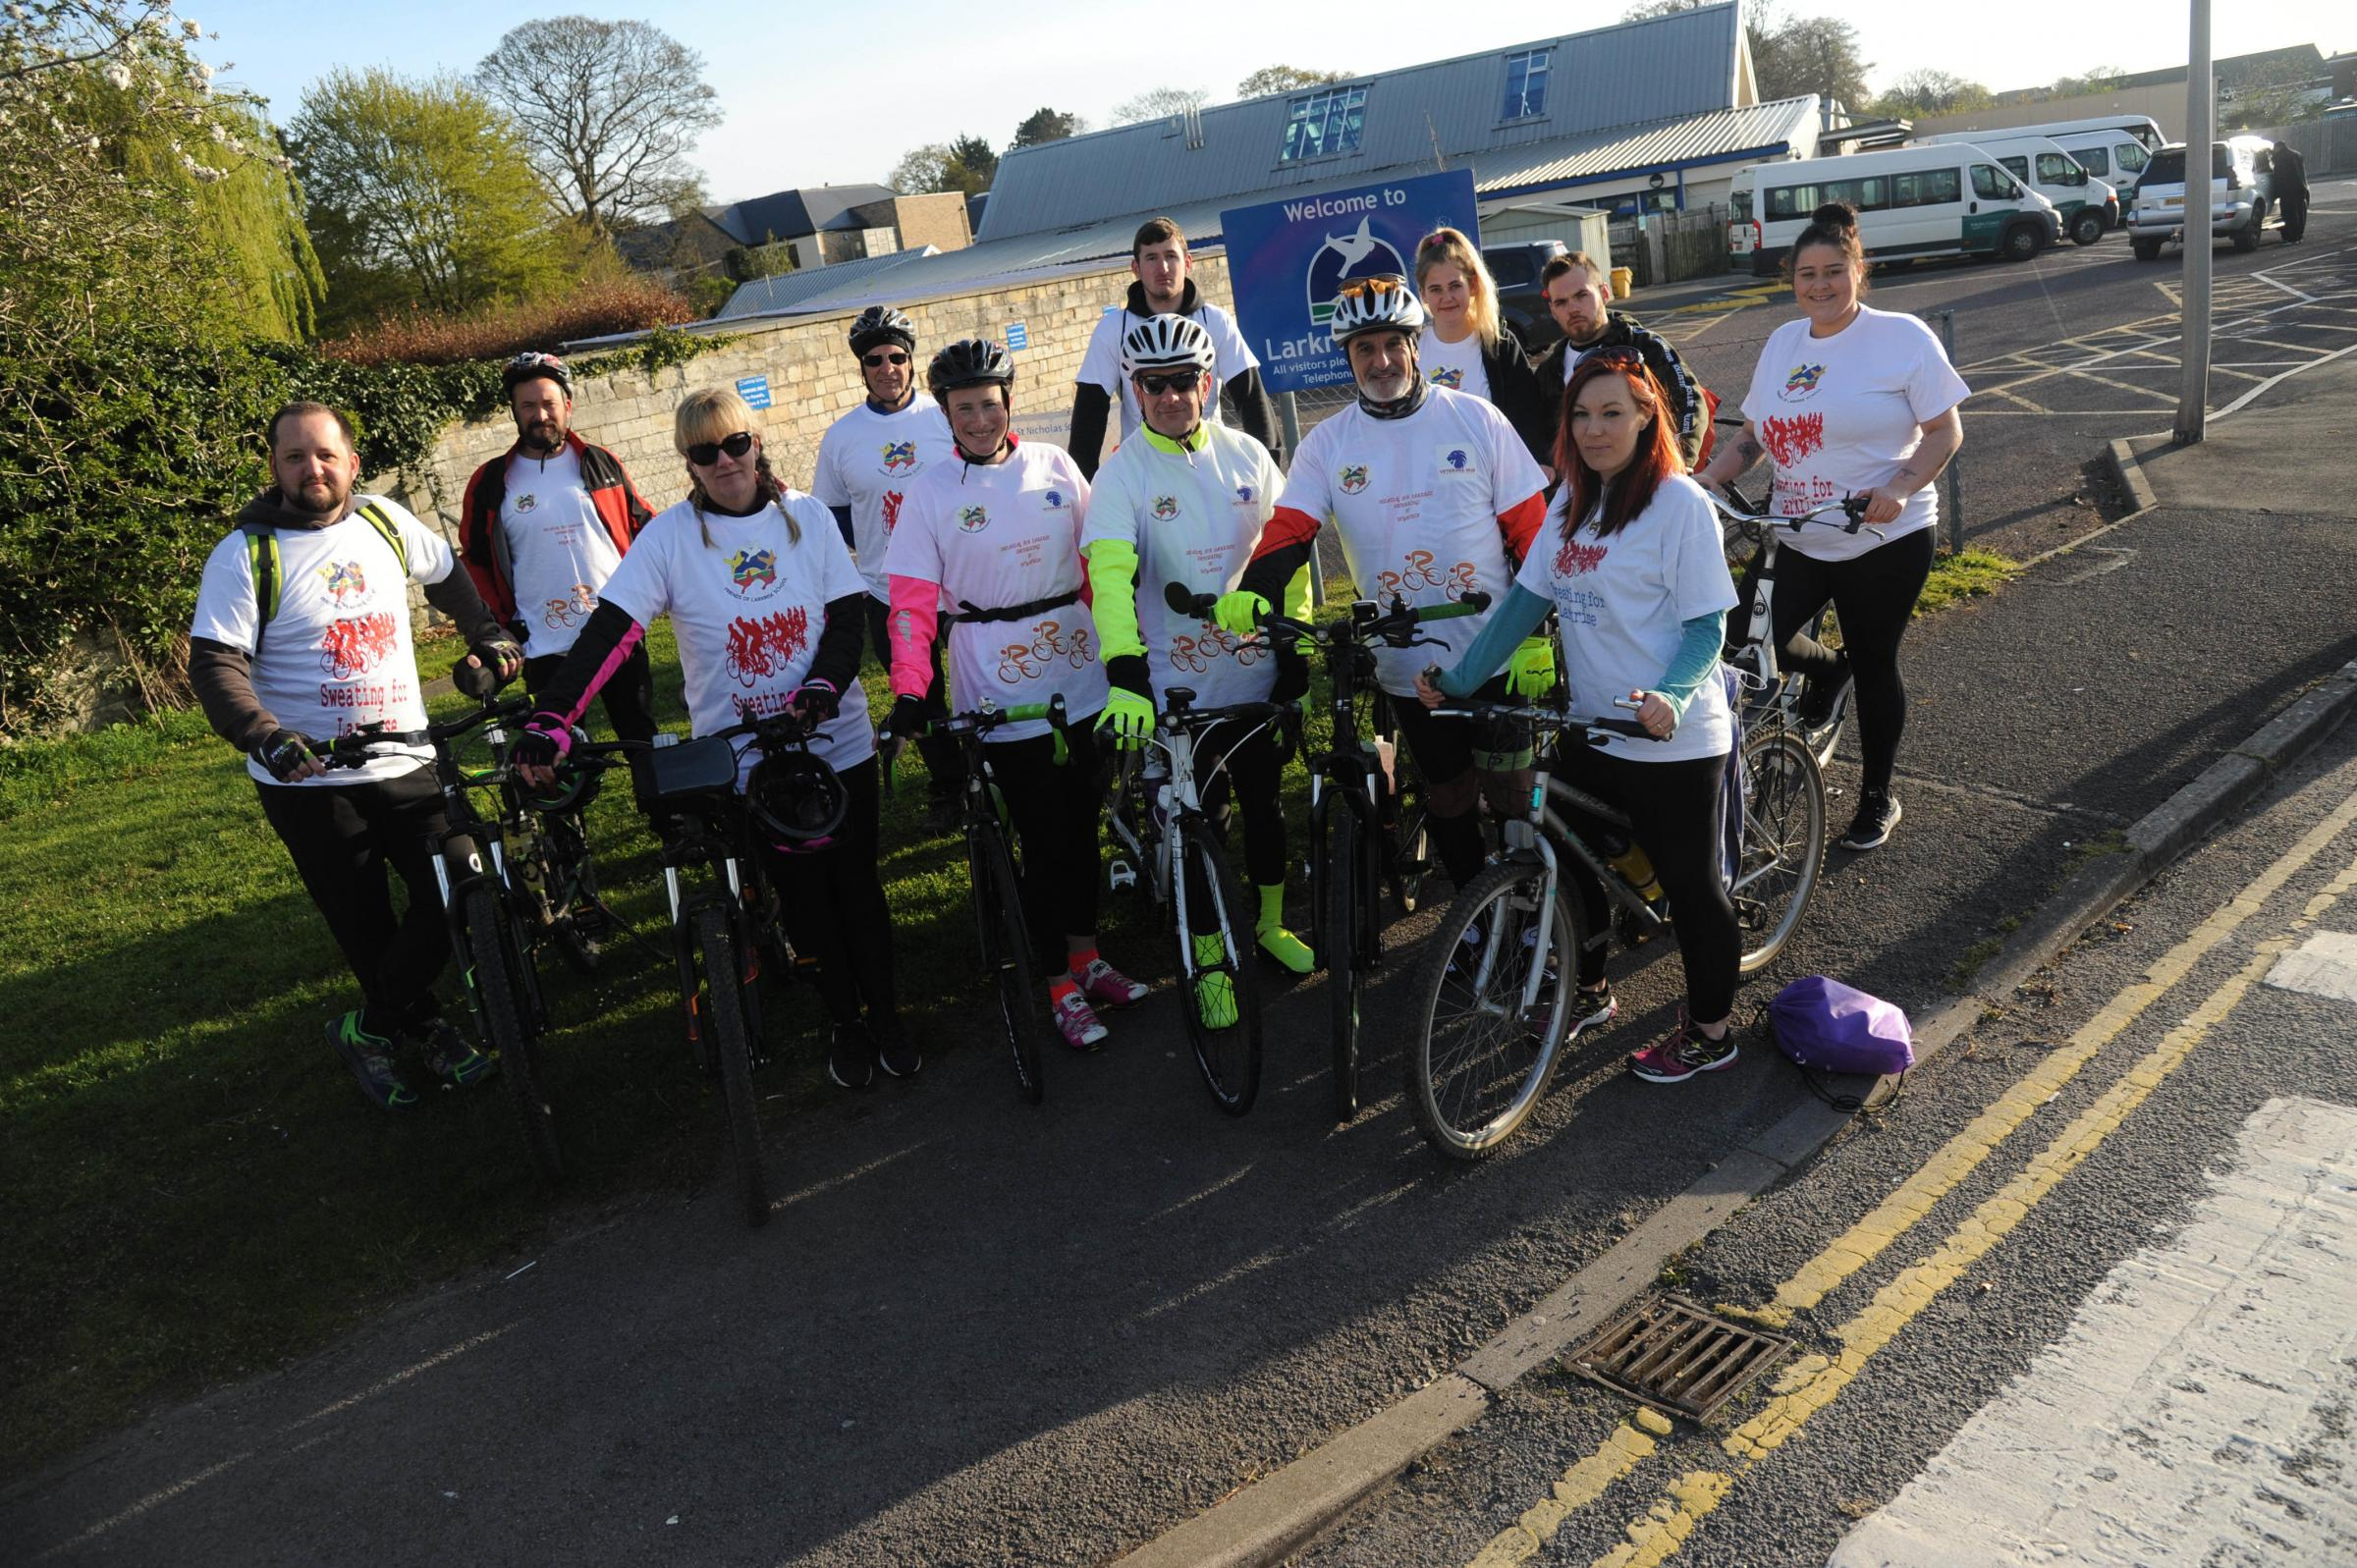 Larkrise charity bike ride. Pedal power pulls in he funds for Larkrise with cyclists staging a fund raising ride to Weymouth. Photo Trevor Porter 60334  1..